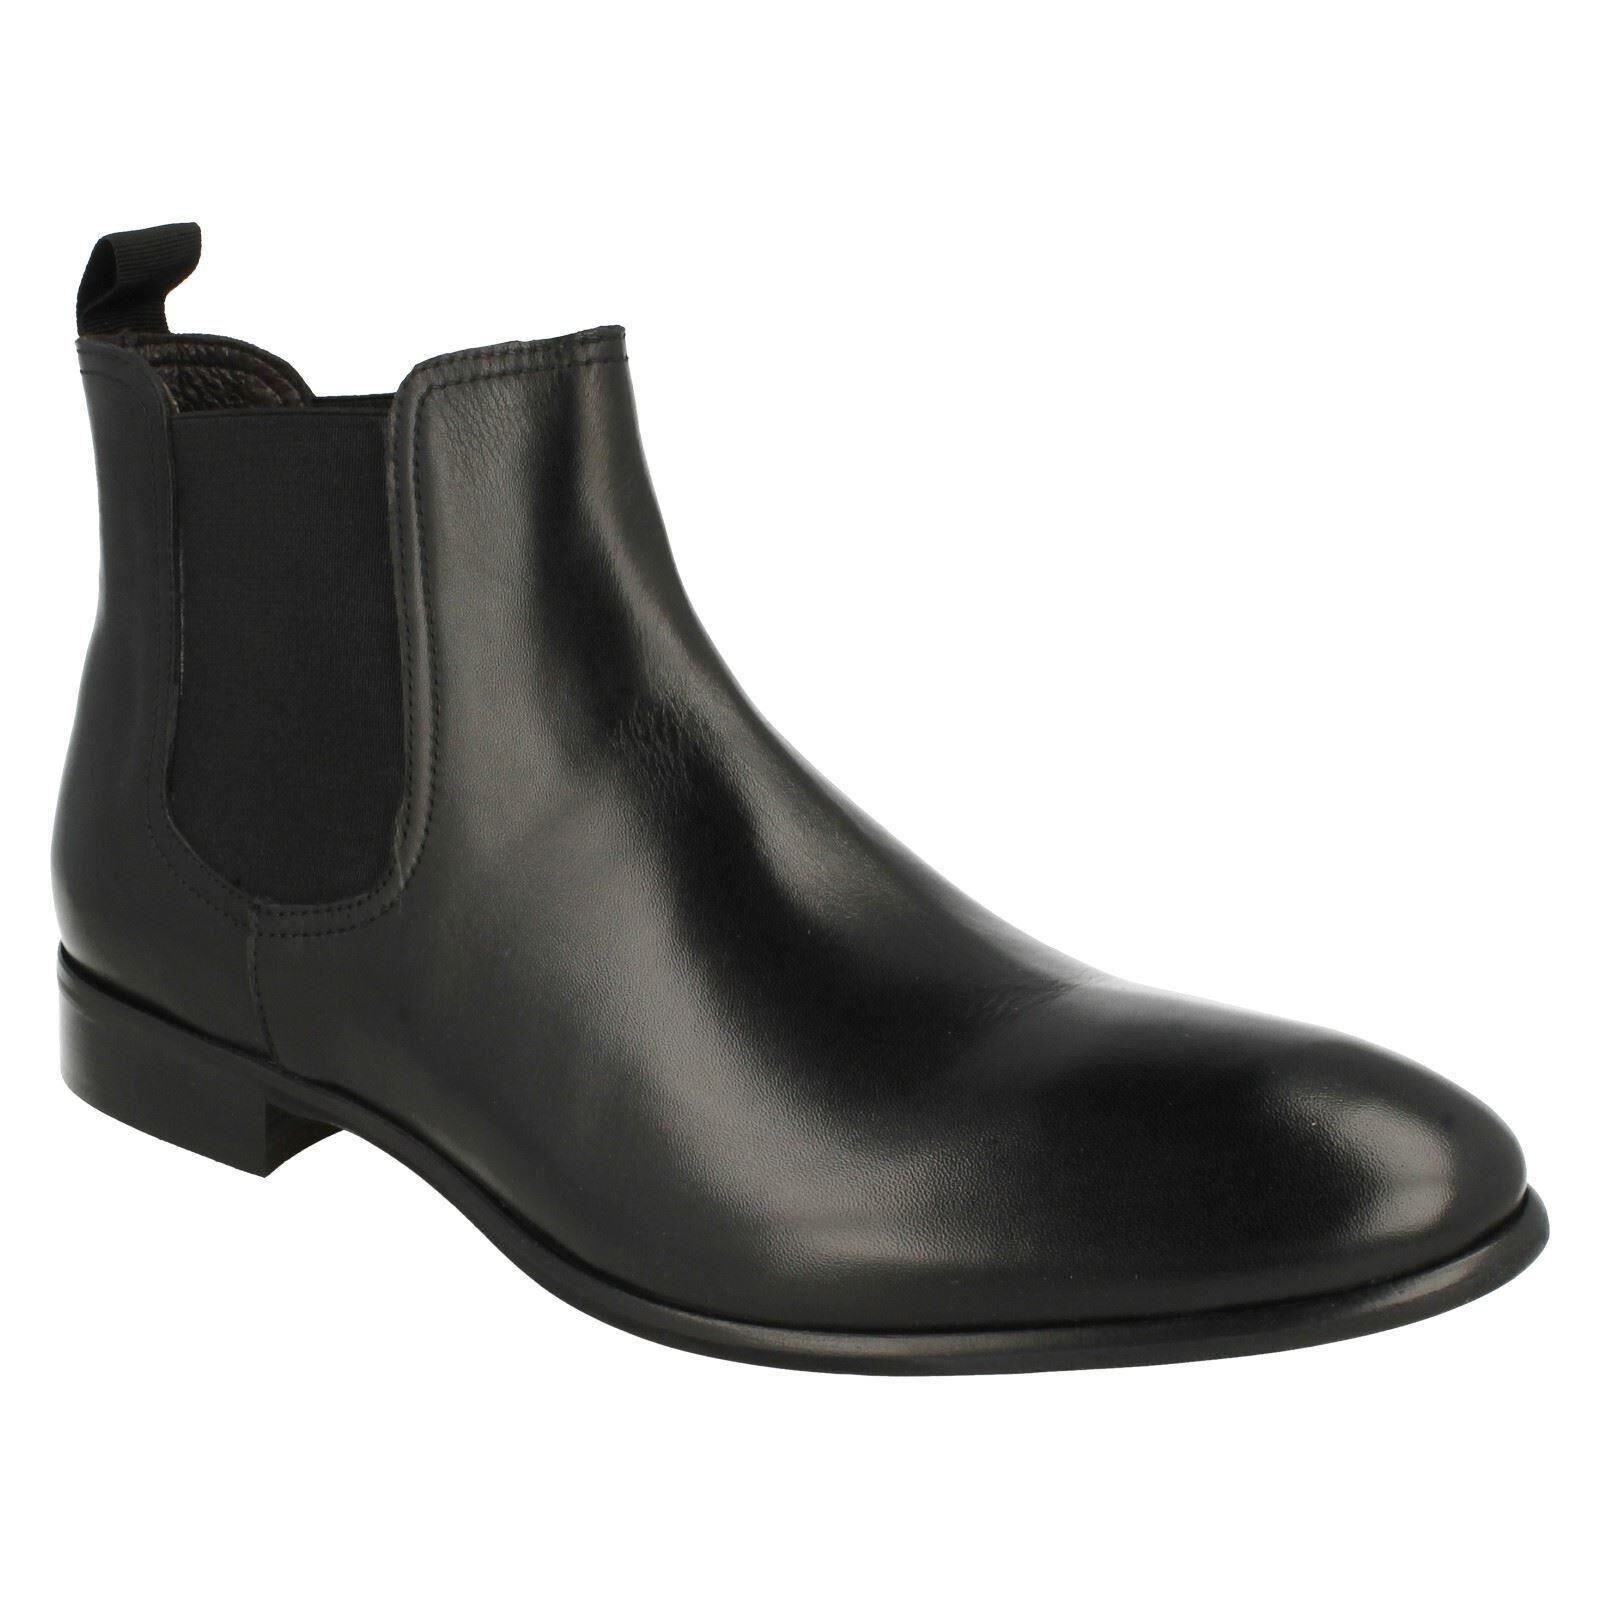 MENS MORENA GABBRIELLI LEATHER SMART FORMAL PULL ON ANKLE Stiefel FA-D1696